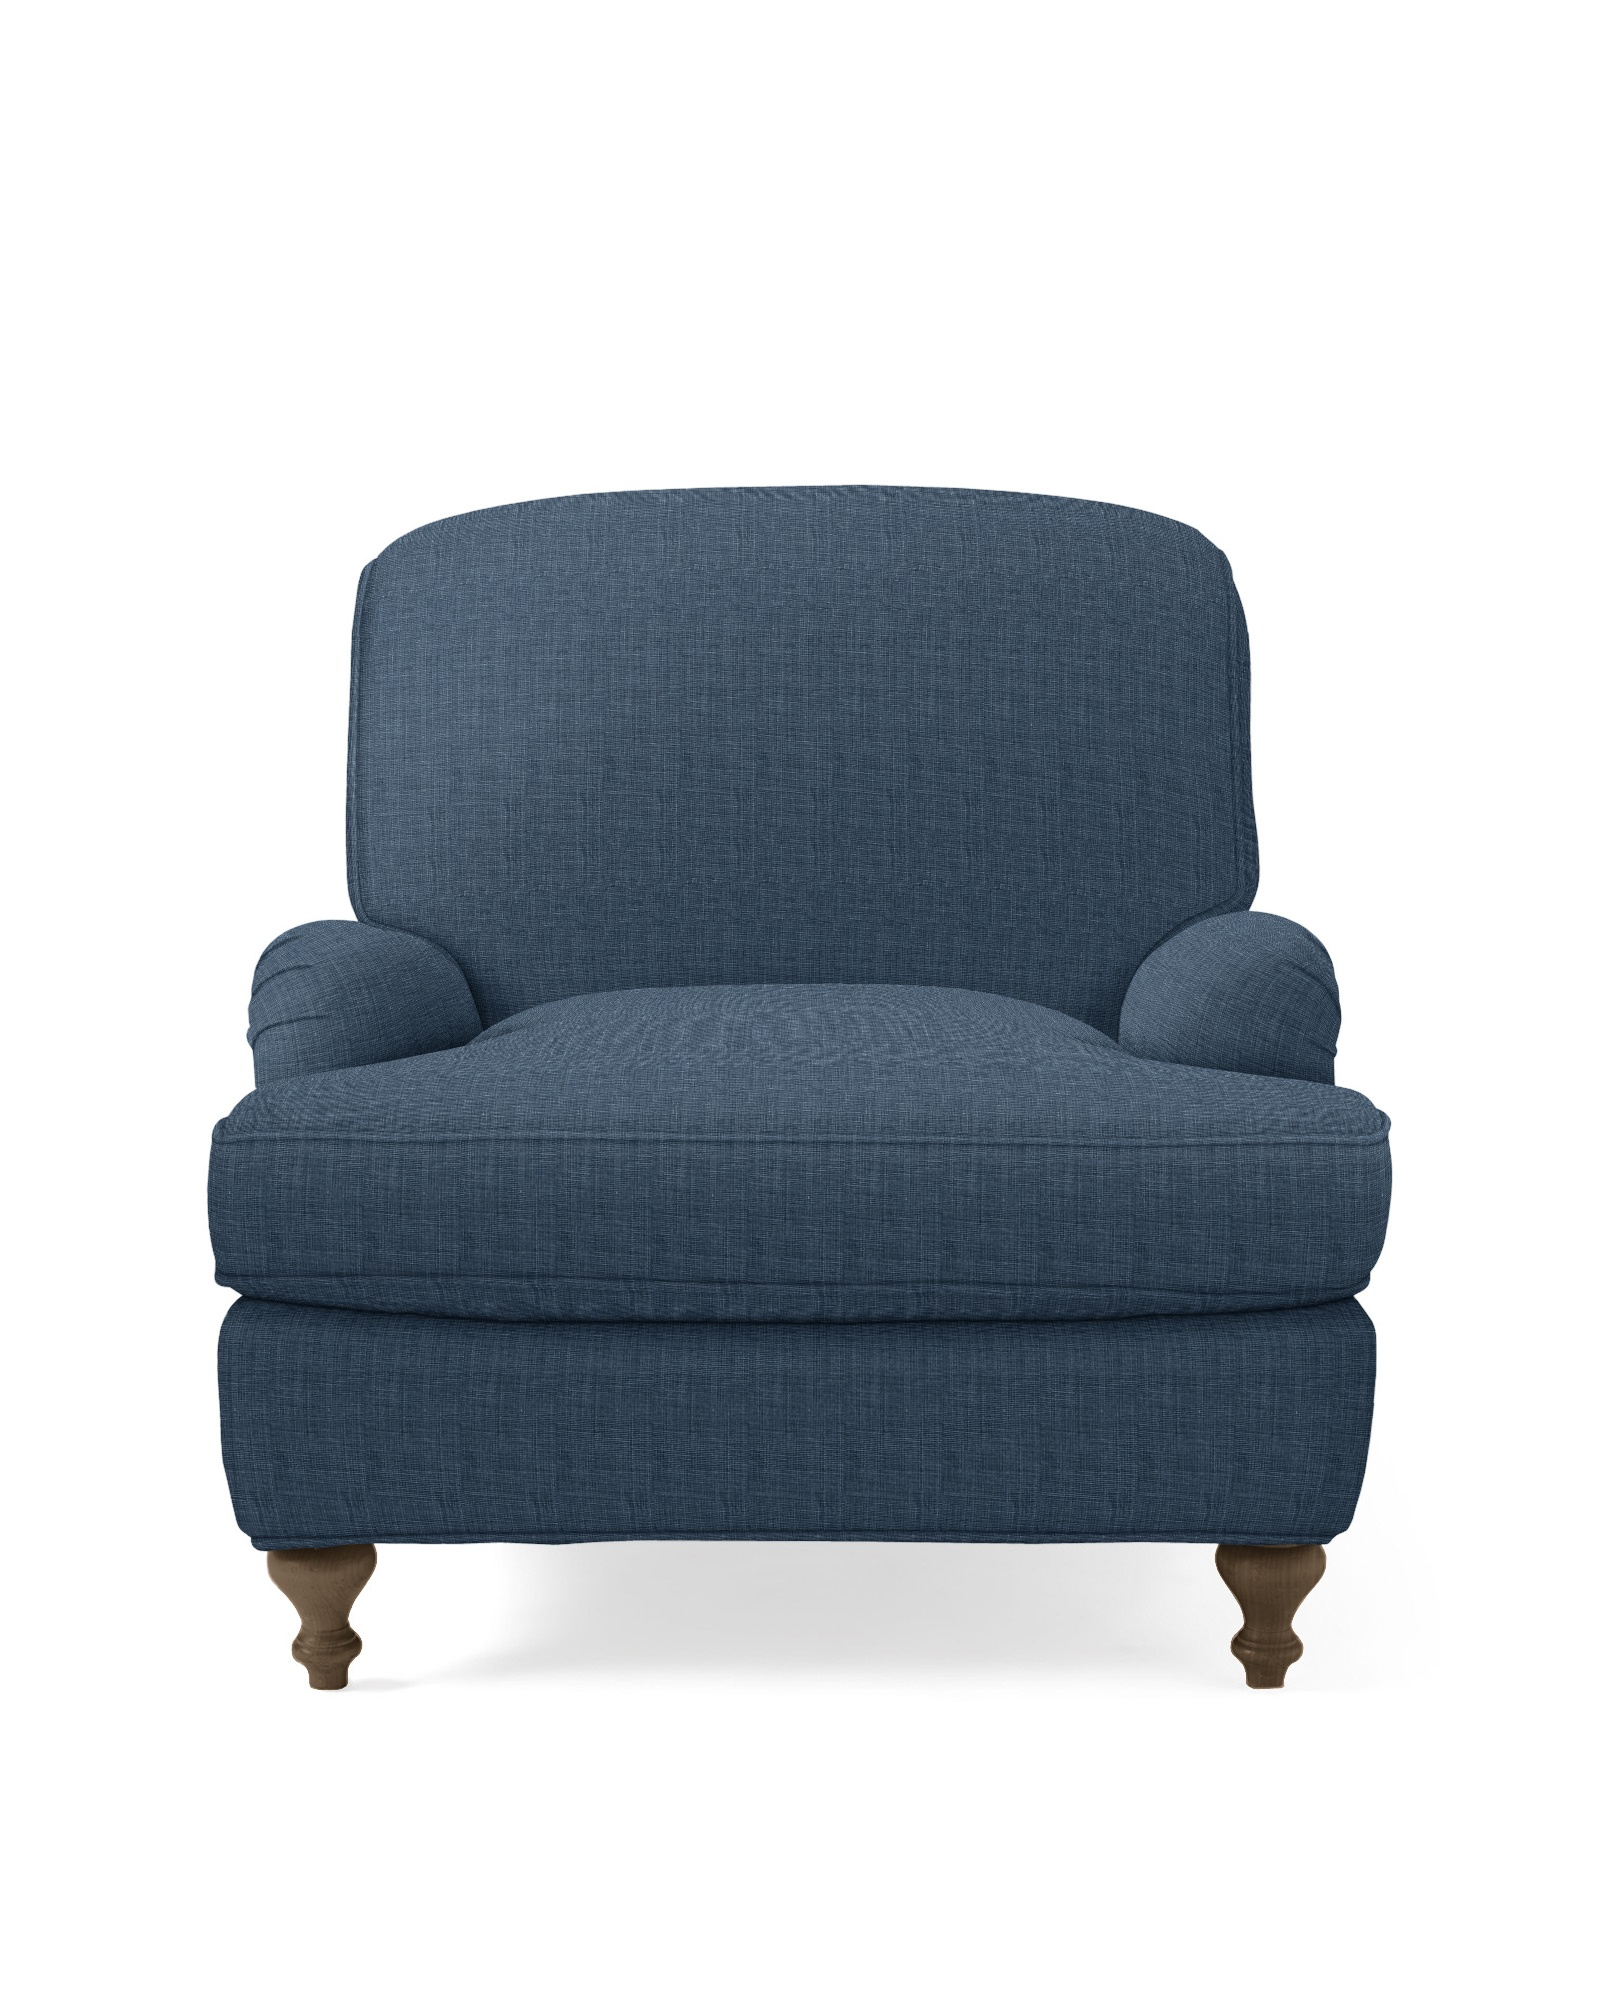 Miramar Chair - Indigo Washed Linen,